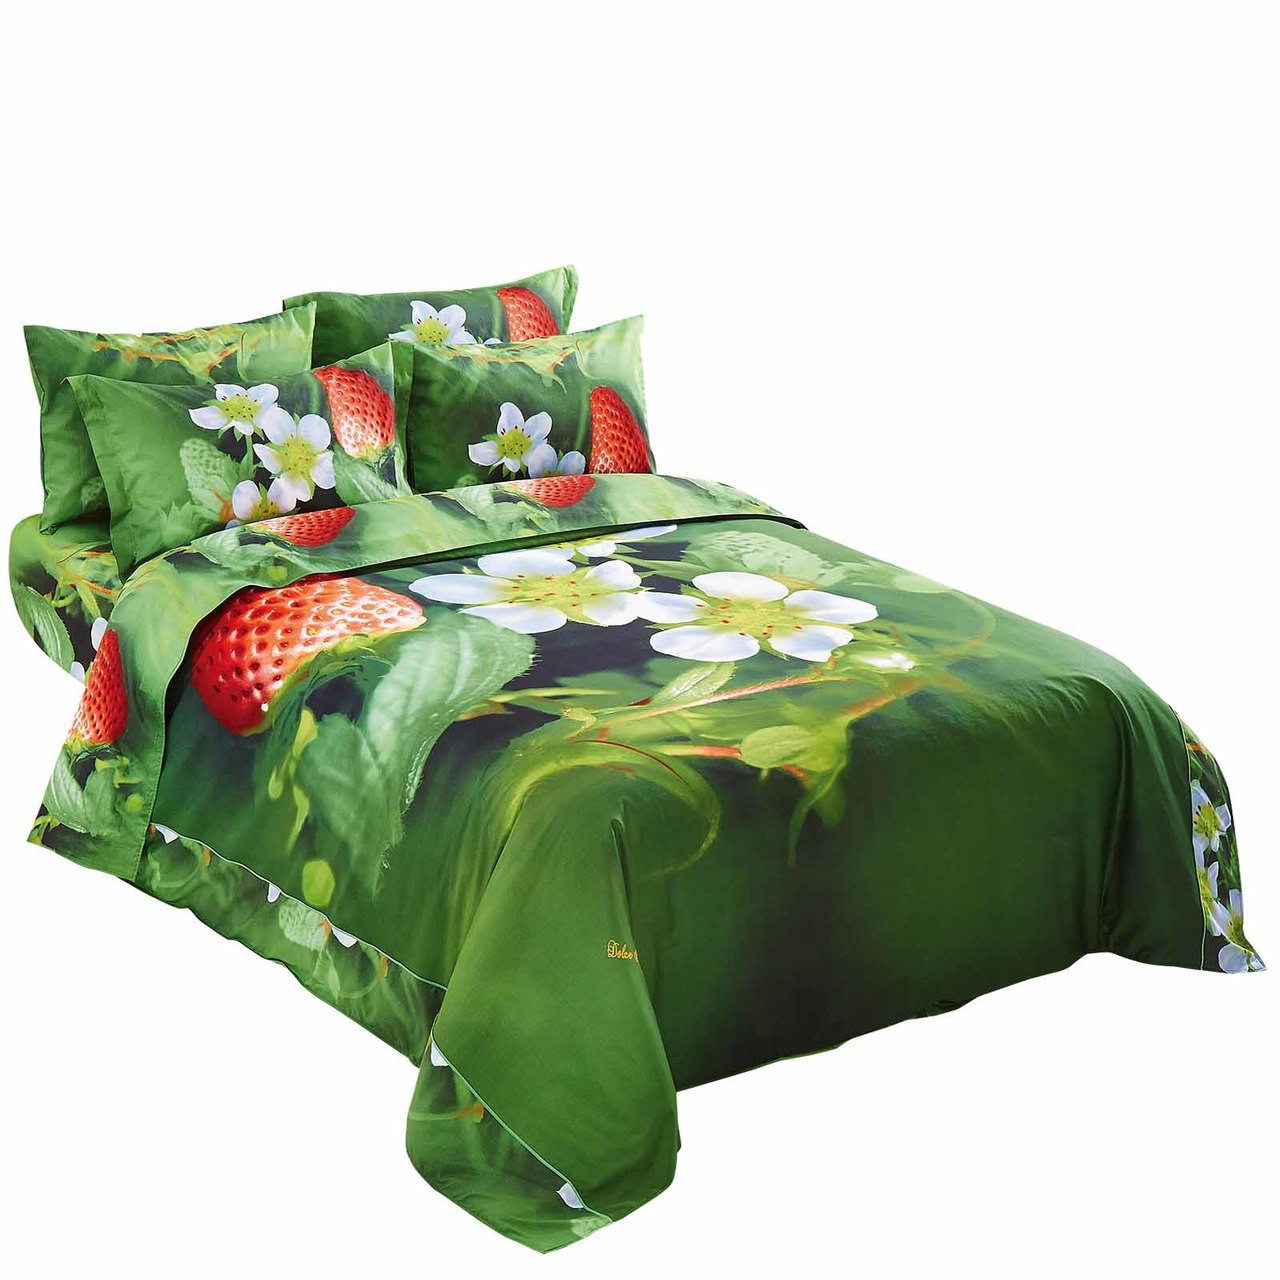 Queen Fitted Bedding Dolce Mela DM512Q